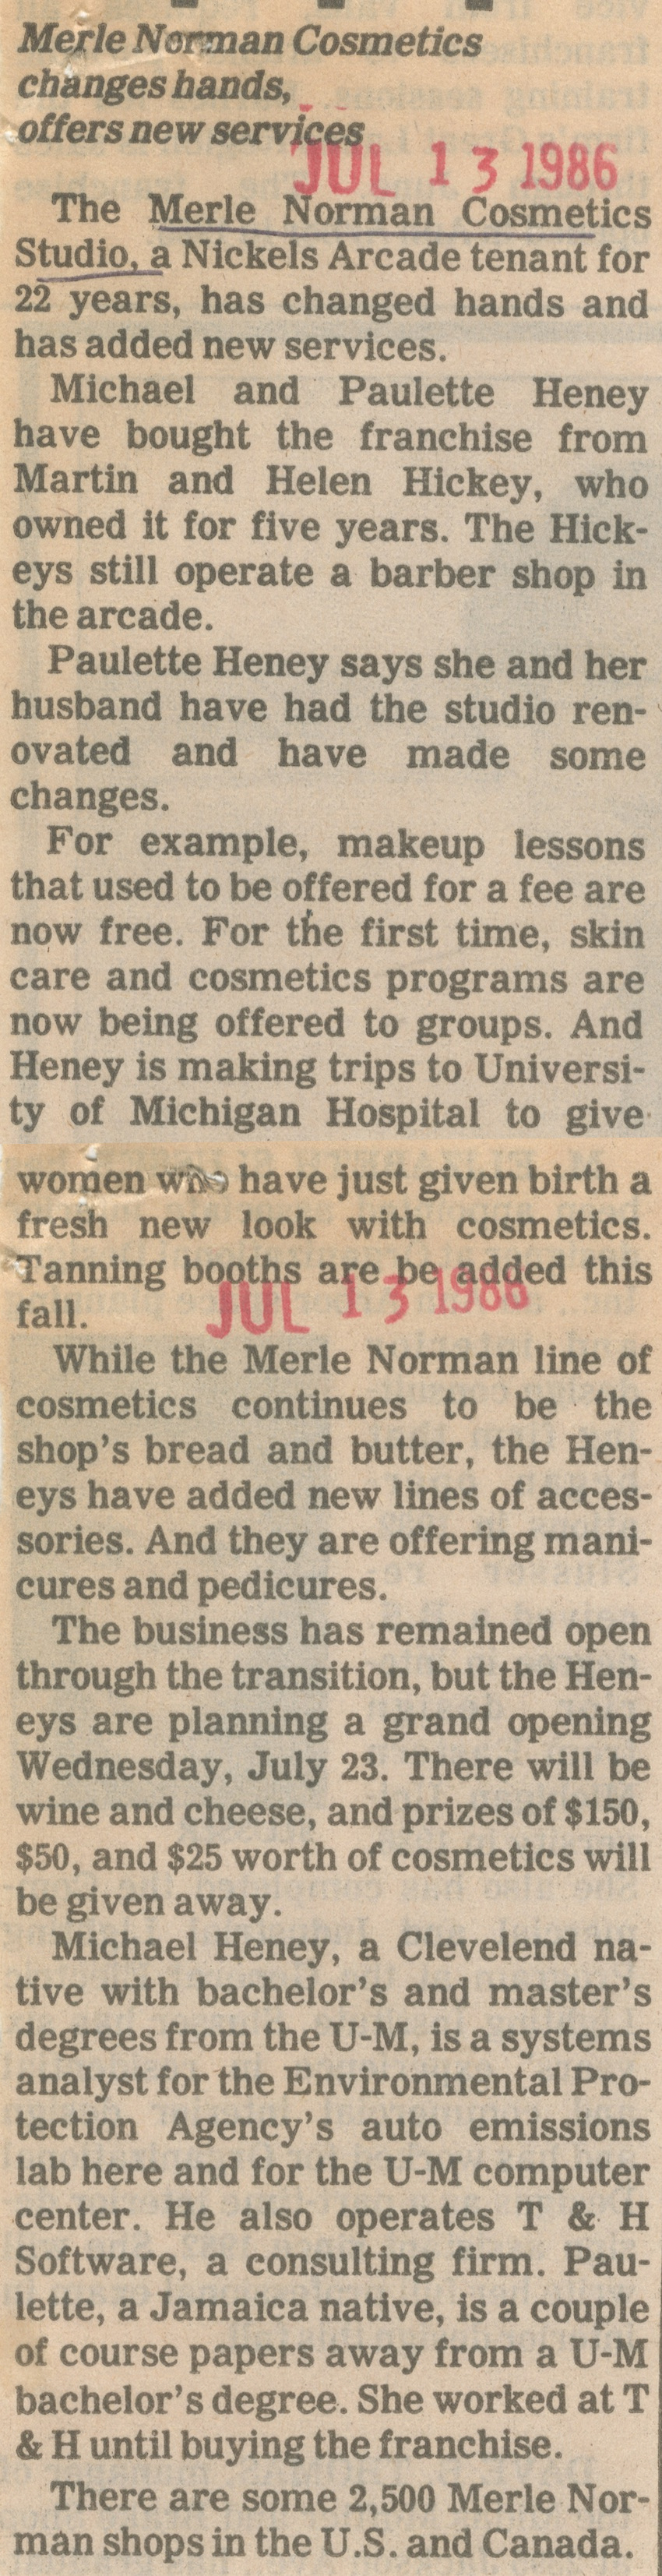 Merle Norman Cosmetics Changes Hands, Offers New Services image